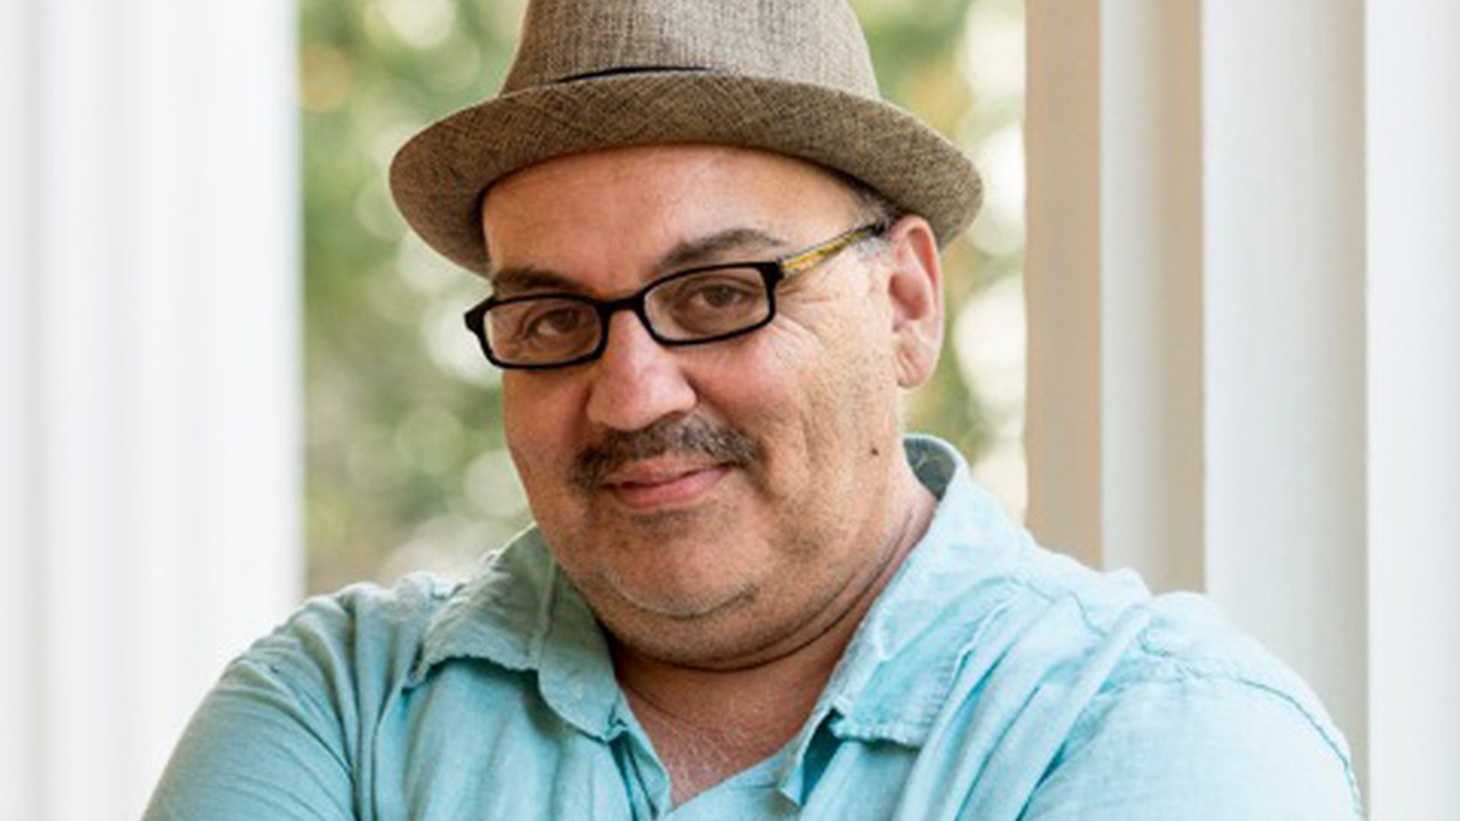 Los Angeles playwright Luis Alfaro's new play Mojada: A Medea in Los Angeles opens September 9 at the Getty Villa. Anthony Byrnes talks with Alfaro about his process, his inspiration, and the challenging balancing act between the Greeks and giving voice to his community.